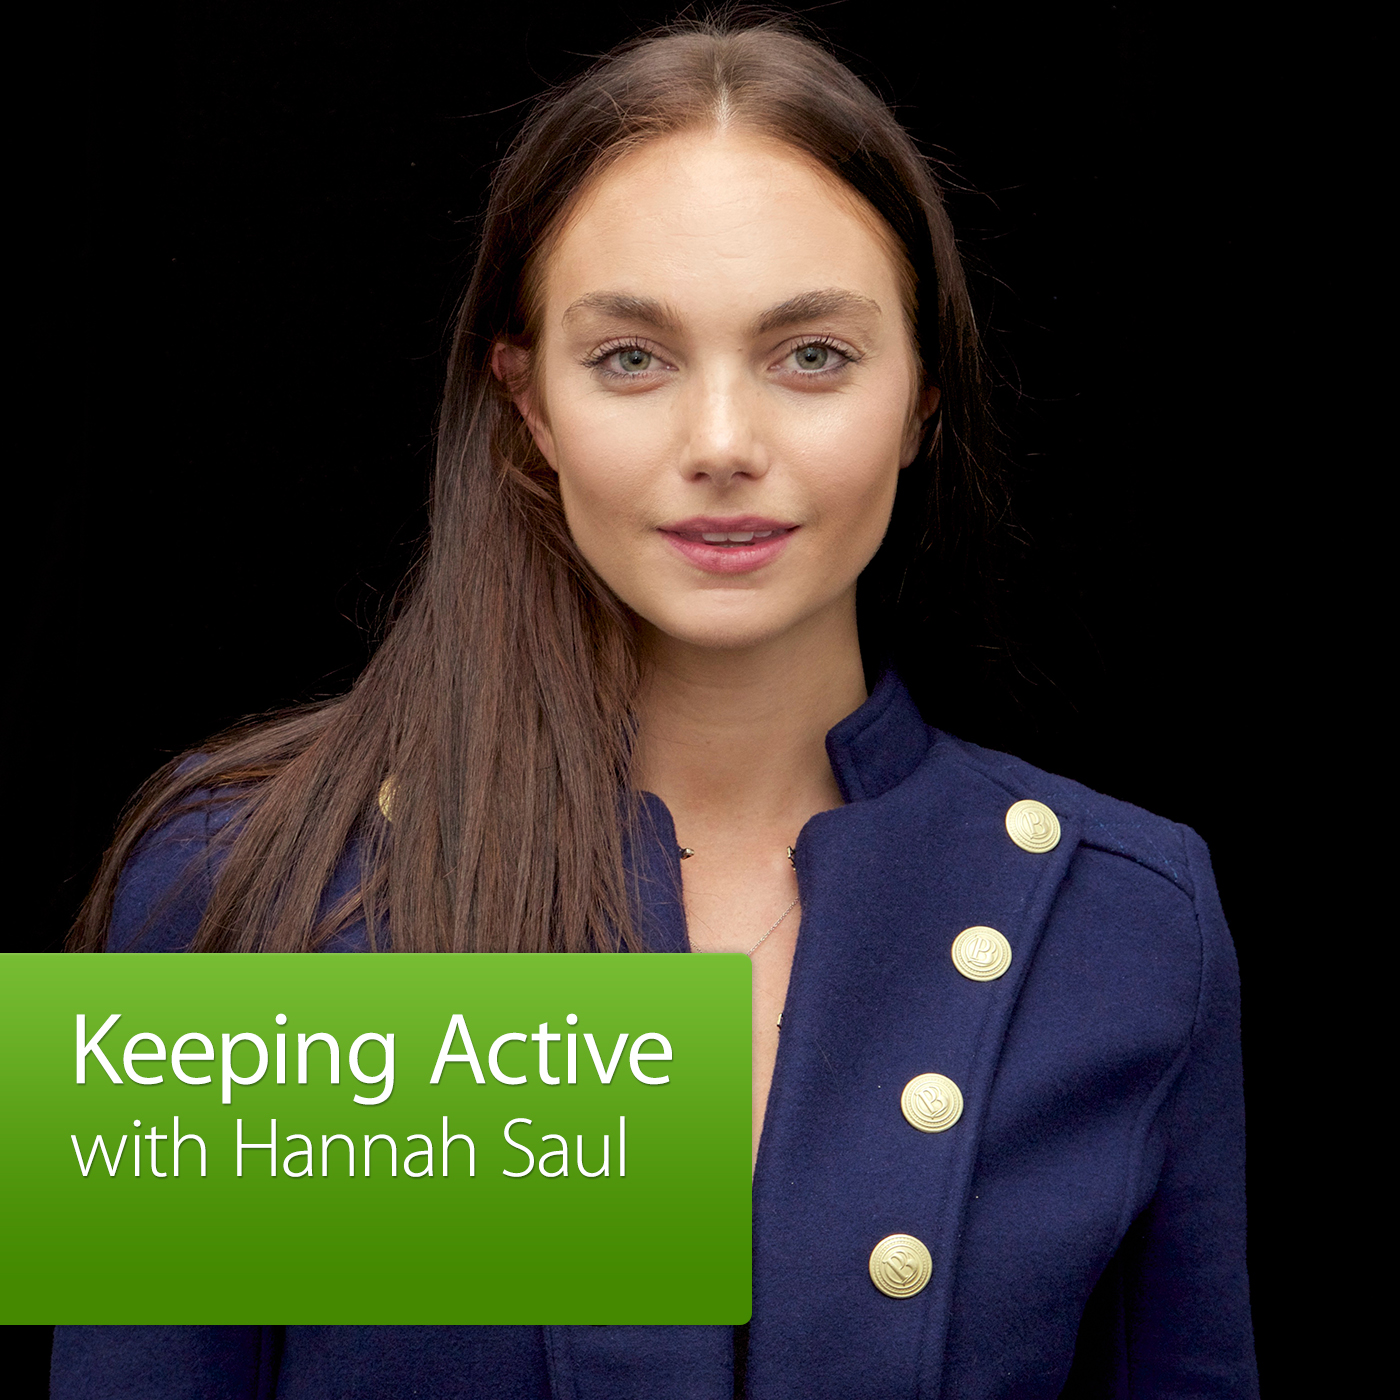 Keeping Active with Hannah Saul